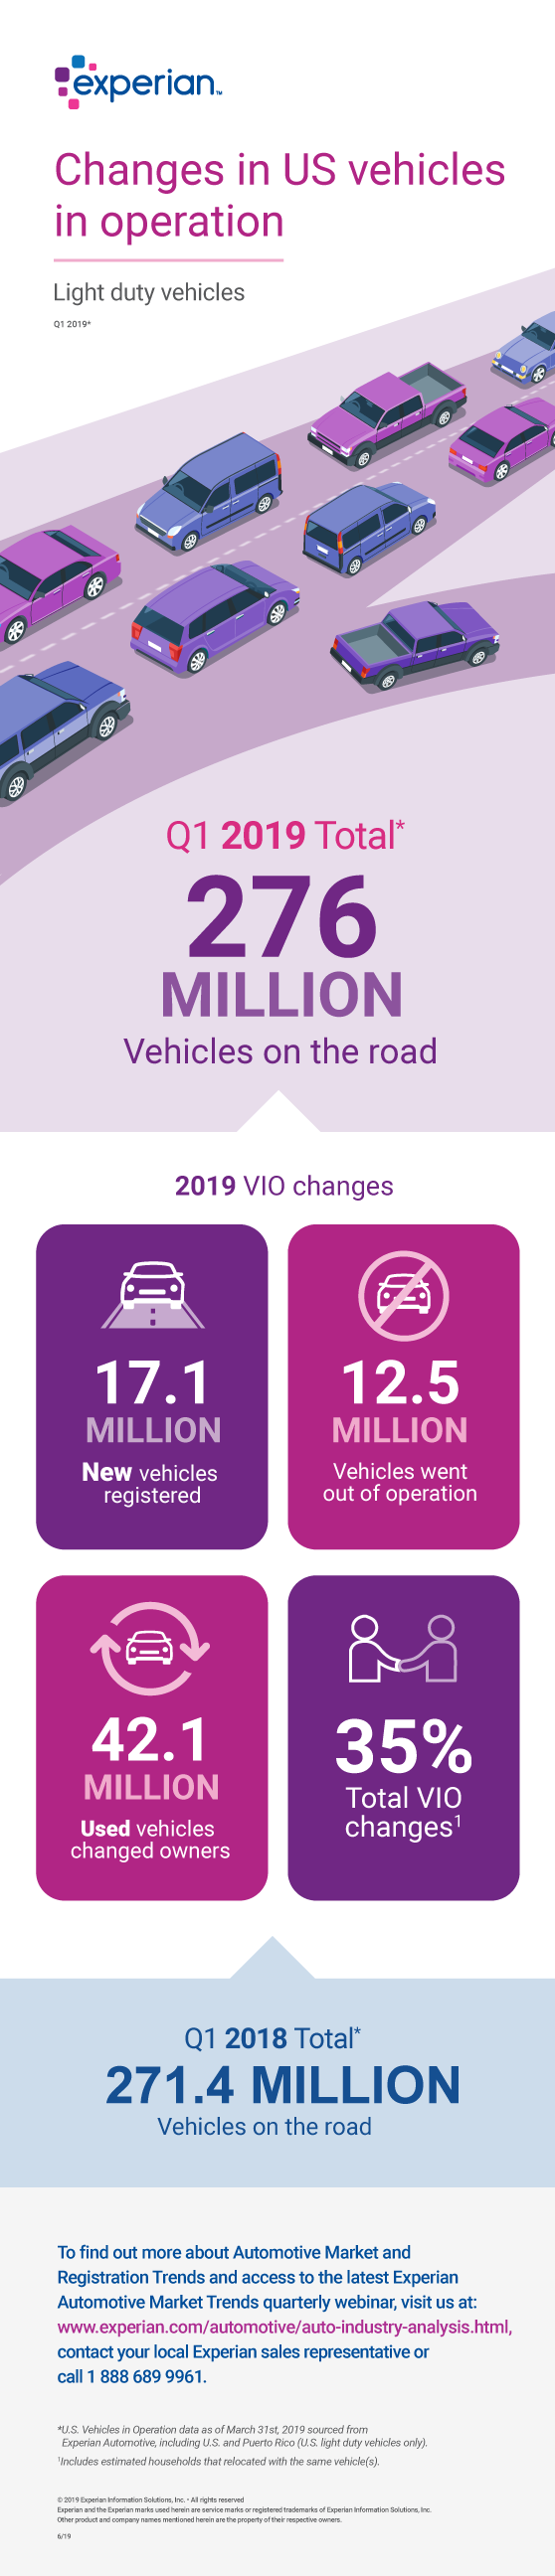 Infographic detailing vehicles in operation Q1 2019